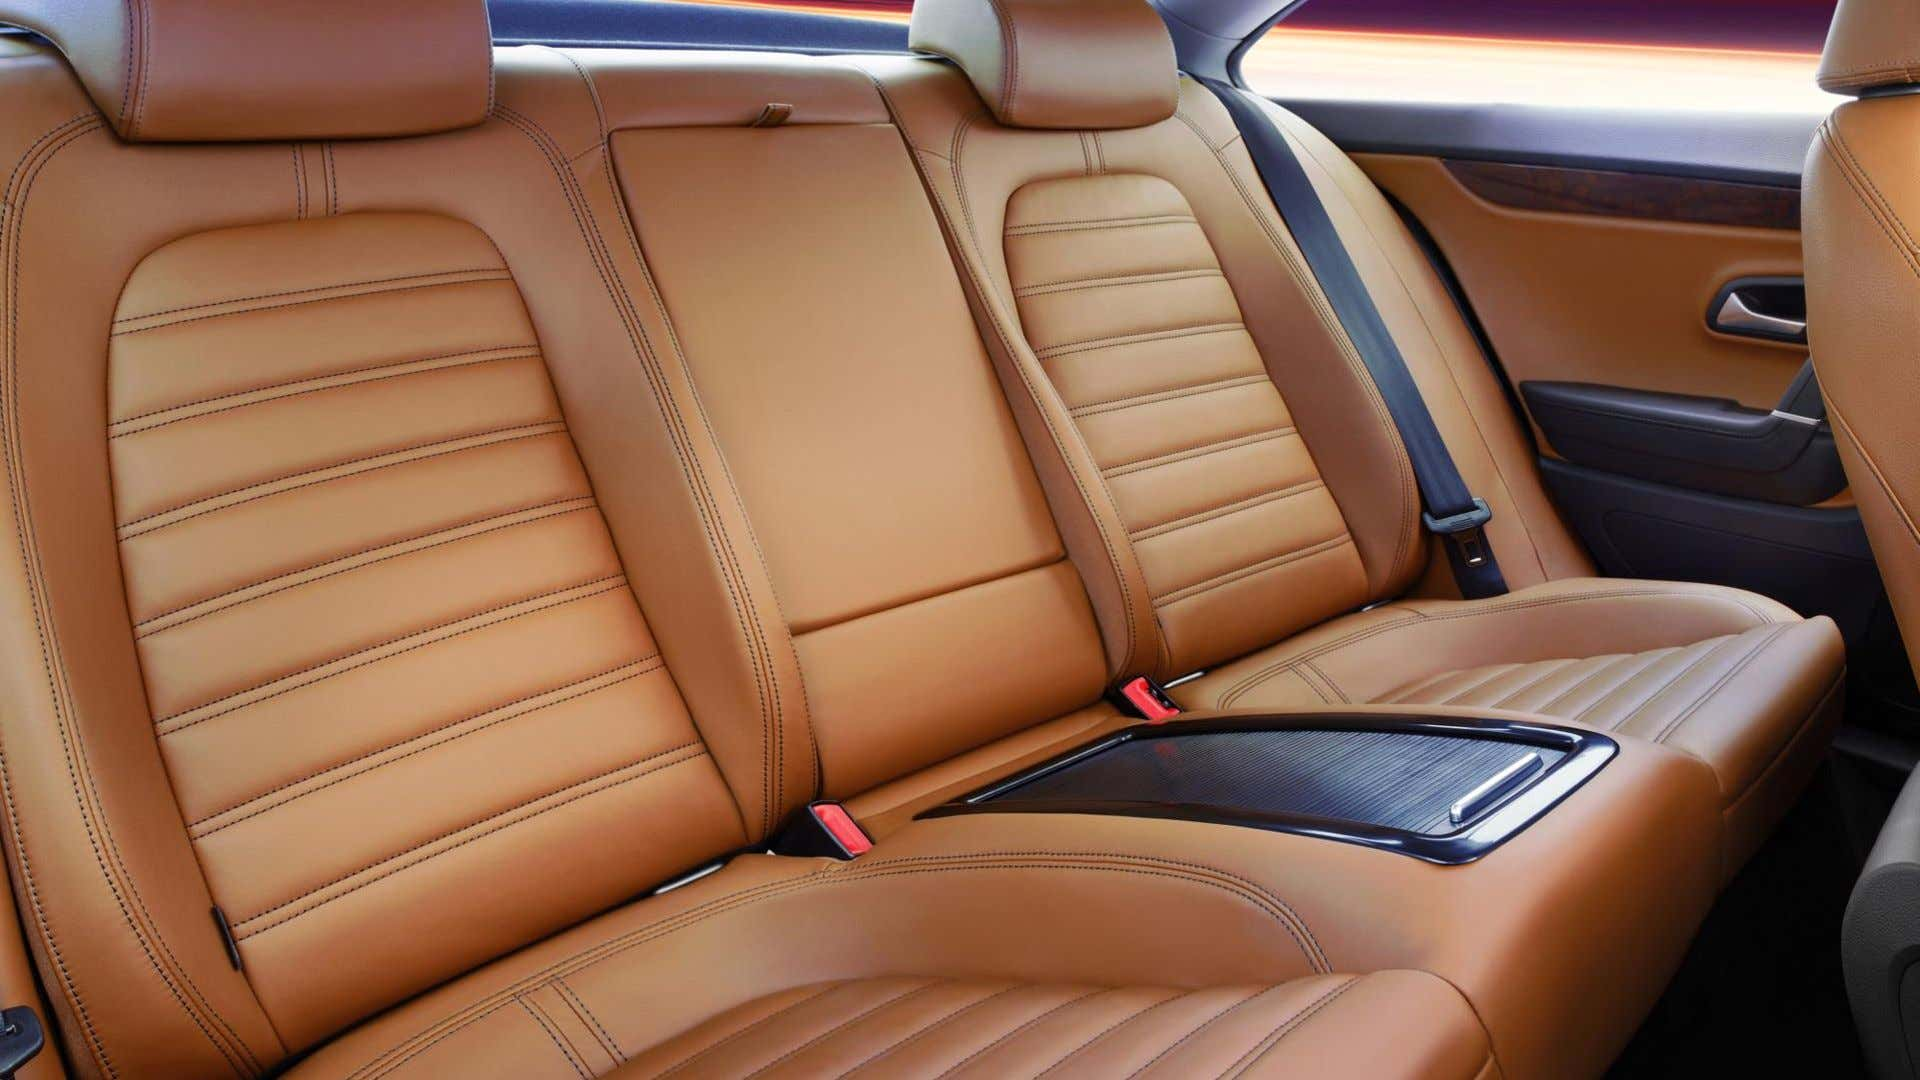 Rear leather seats of an SUV.